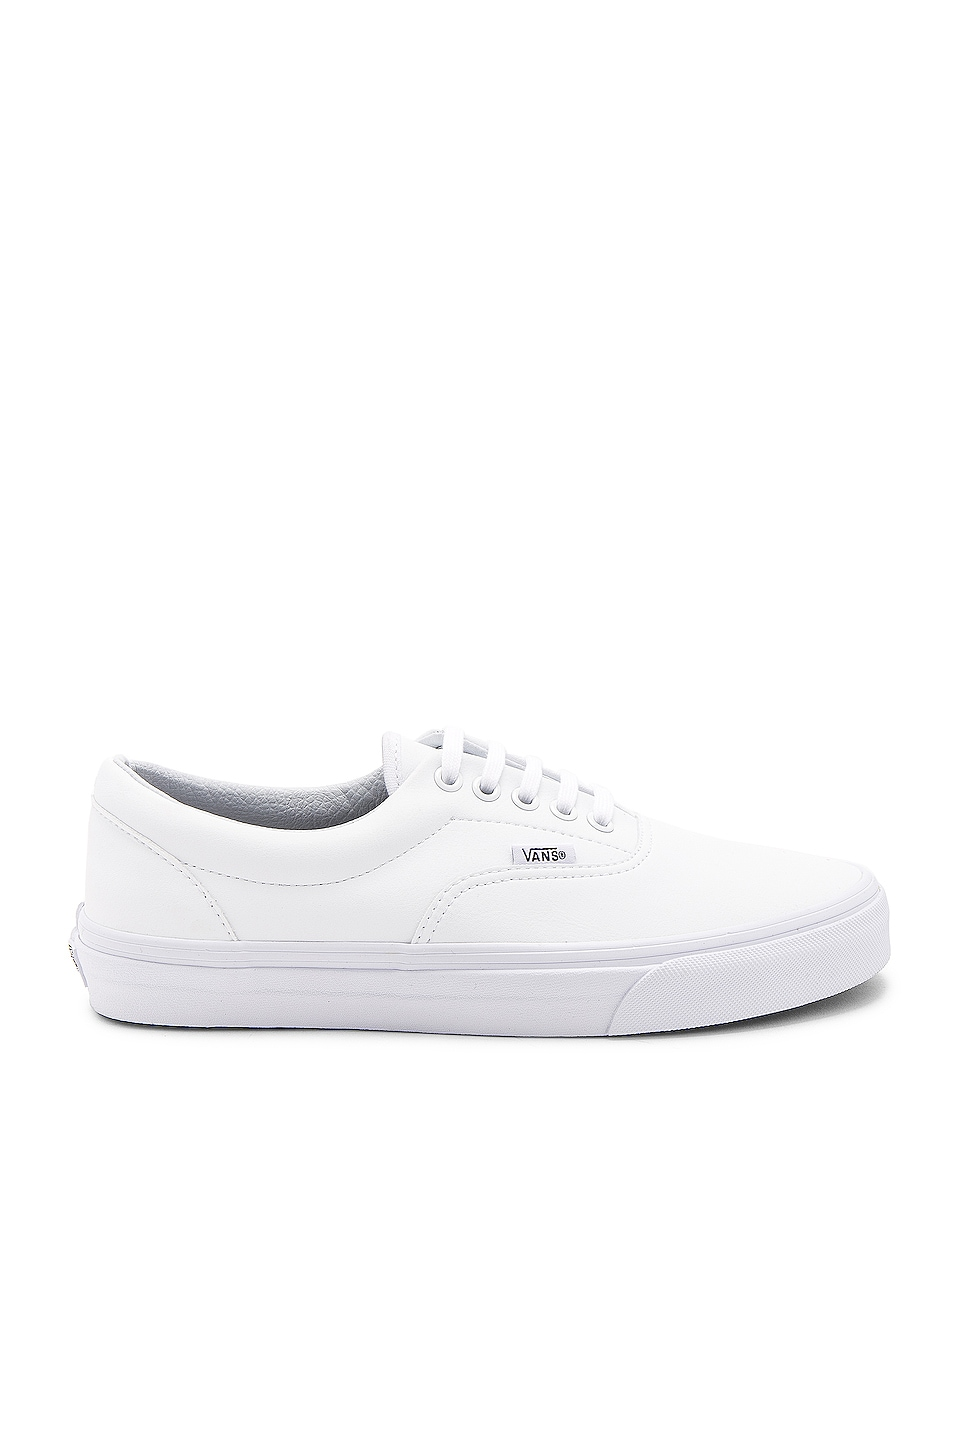 Vans Era in True White